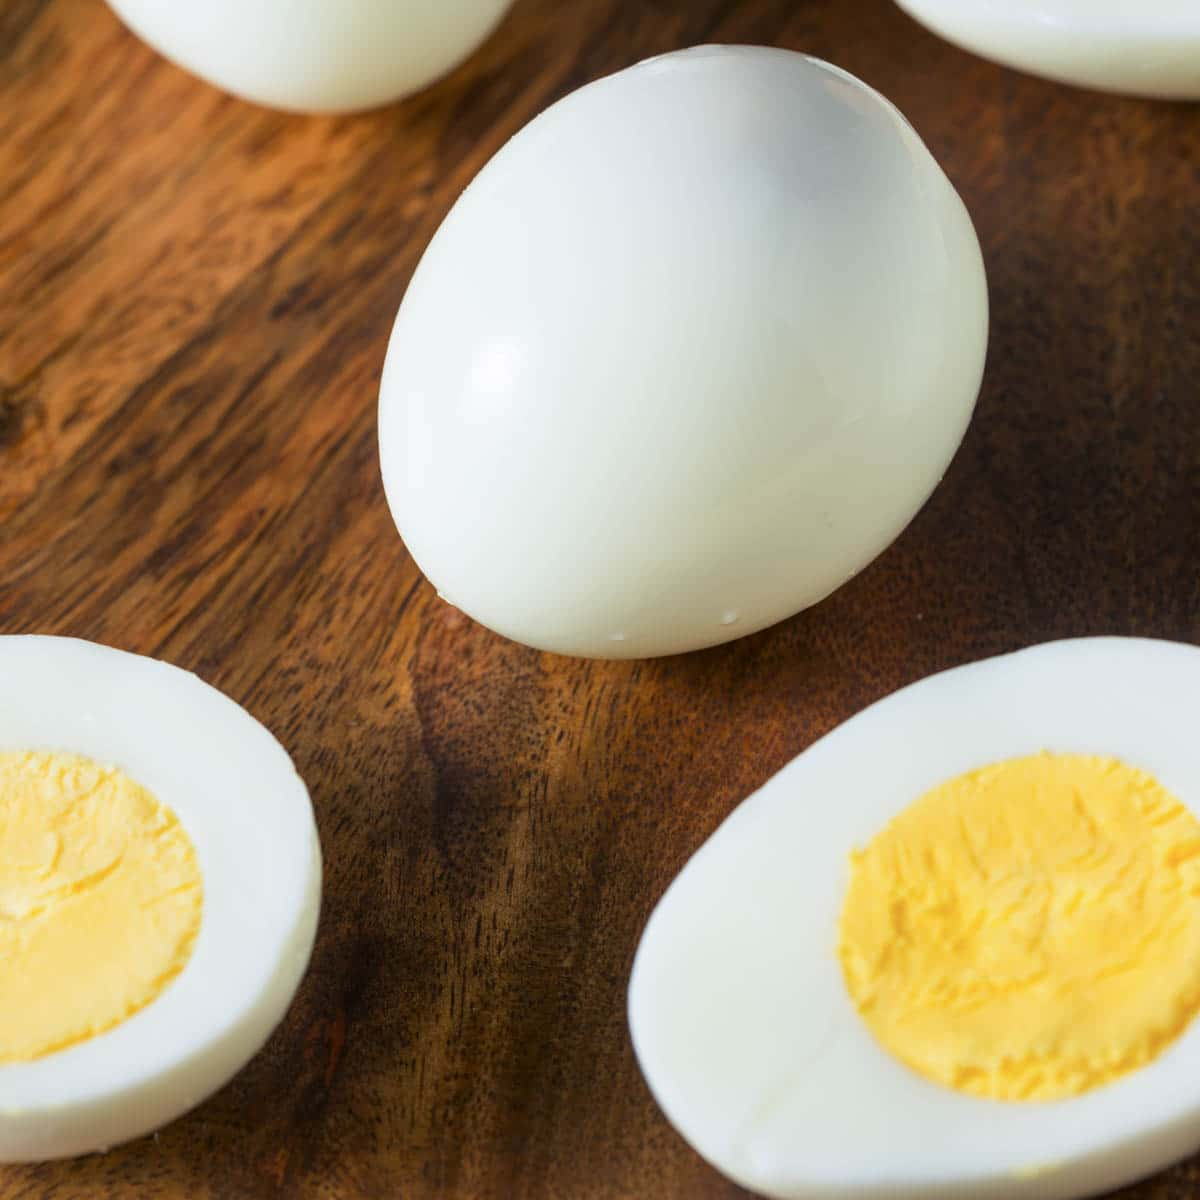 Hard boiled egg in the middle with a hard boiled egg cut in half in front